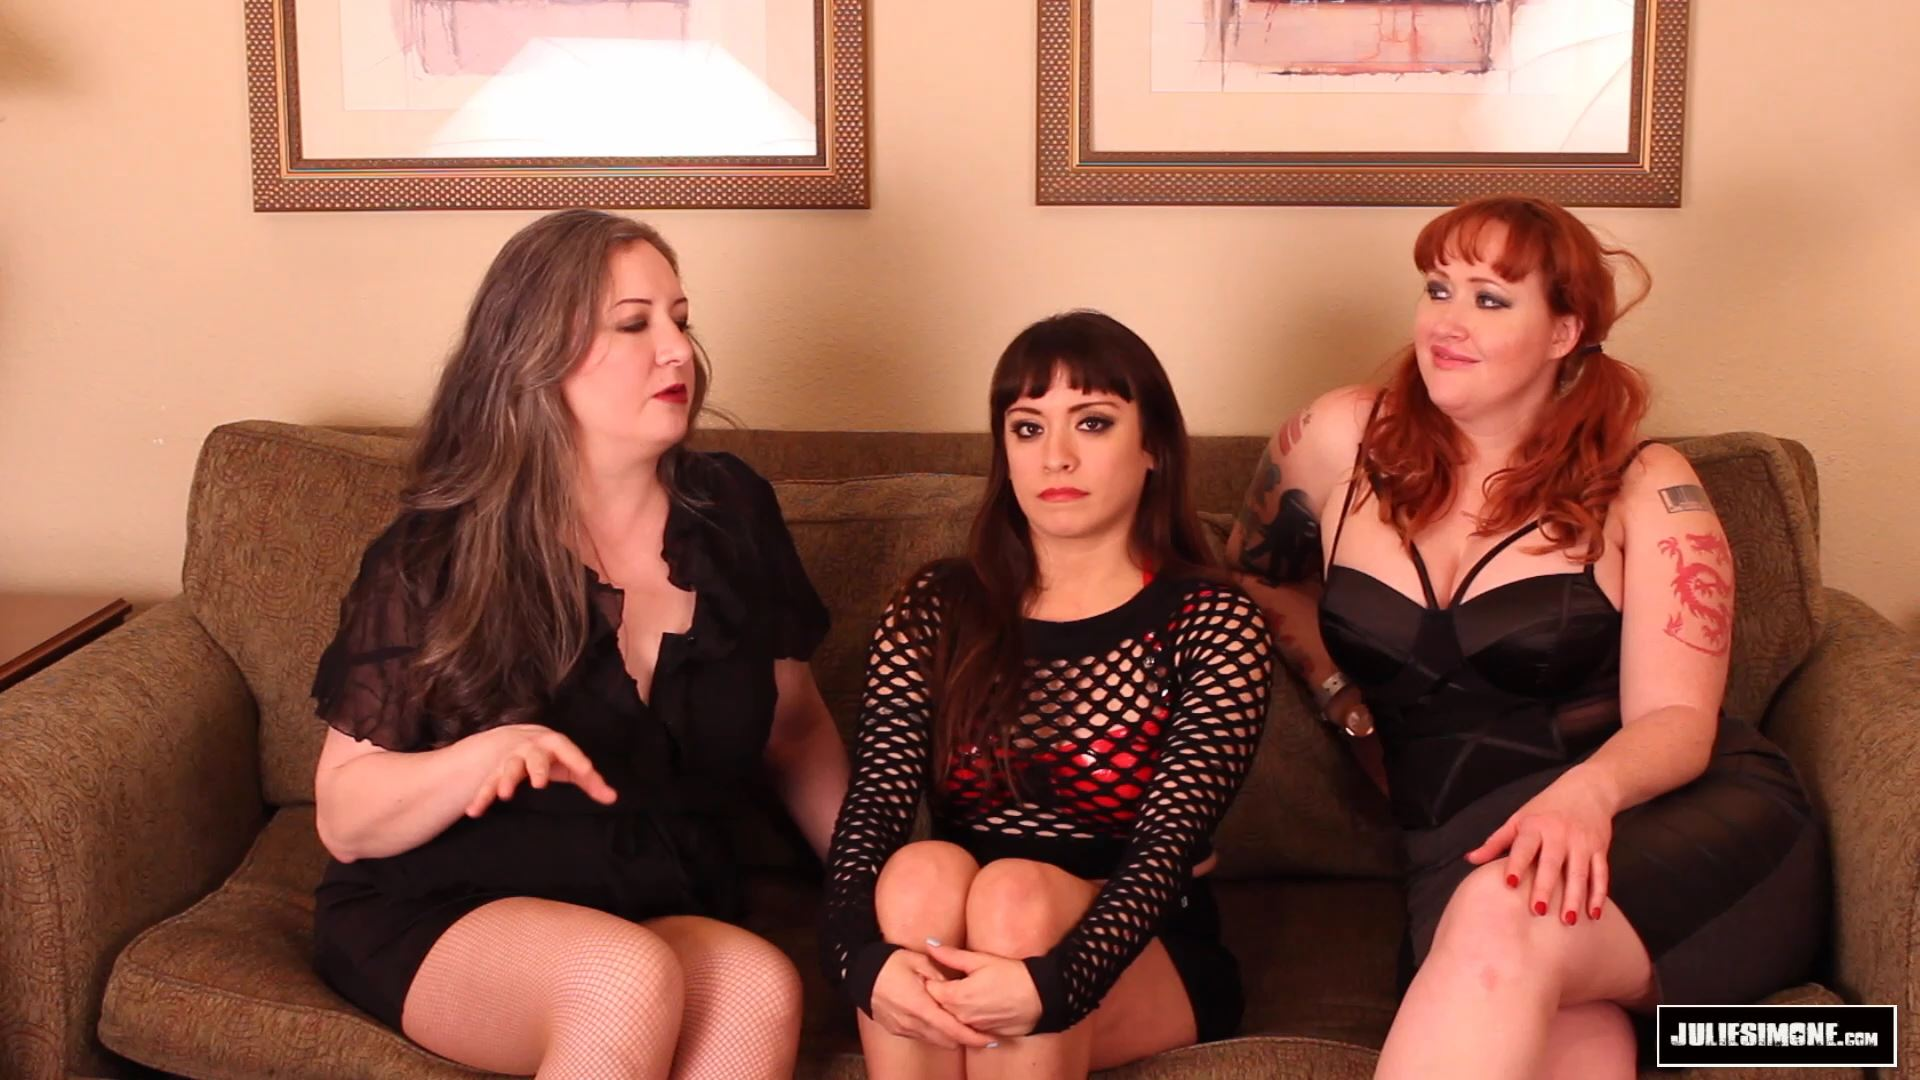 Amara Noir, Anna Valentina, Julie Simone In Scene: Toilet Humiliation - JULIESIMONE - FULL HD/1080p/MP4